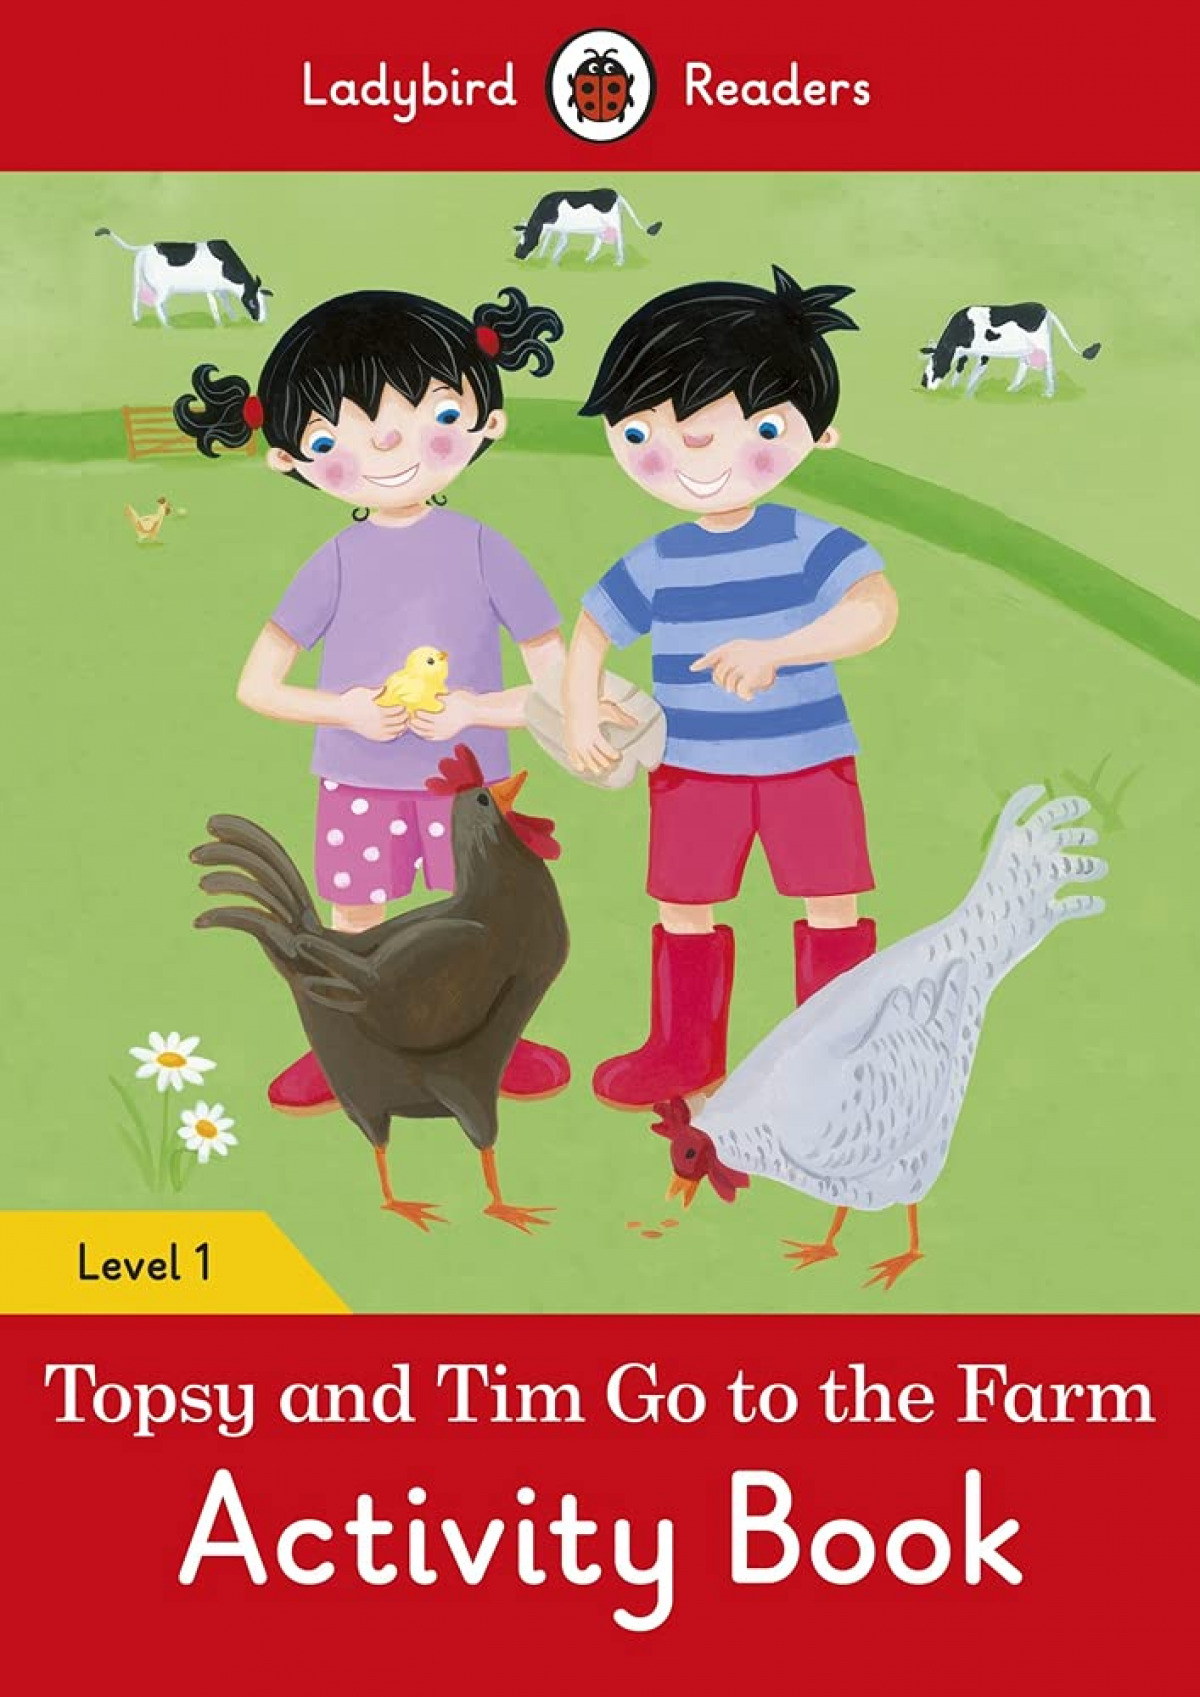 GO TO THE FARM. TOPSY AND TIM. ACTIVITY BOOK